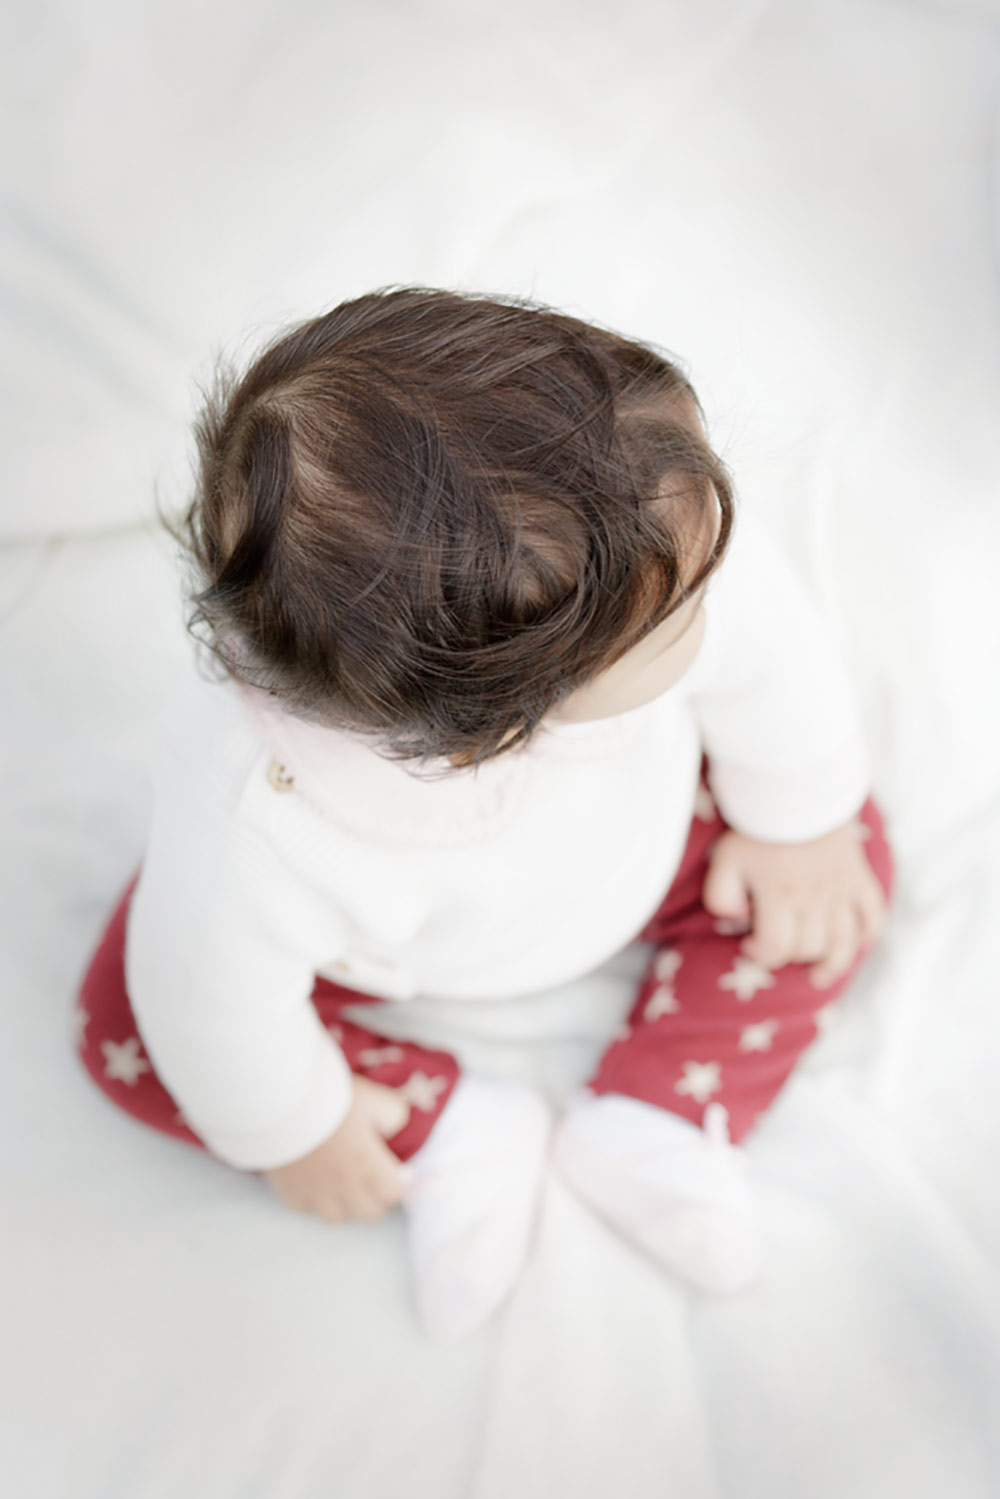 six month old hair